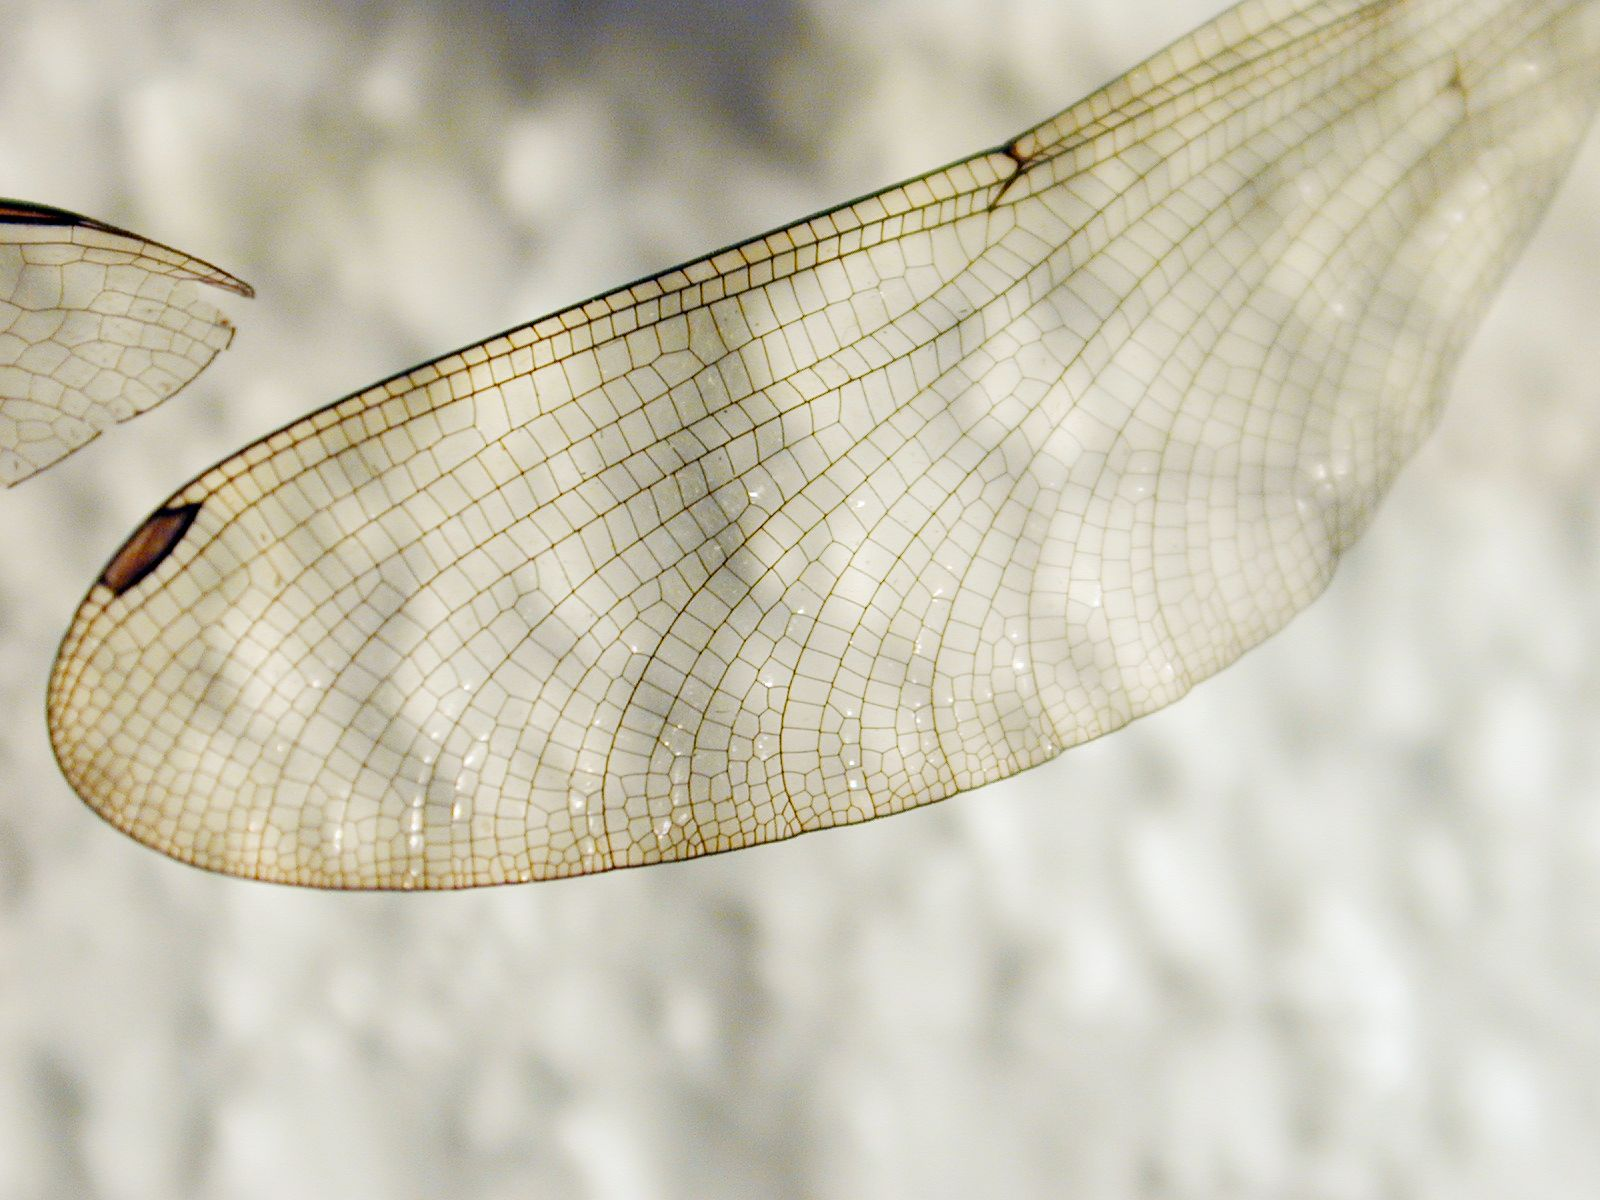 Insect wing texture - photo#16